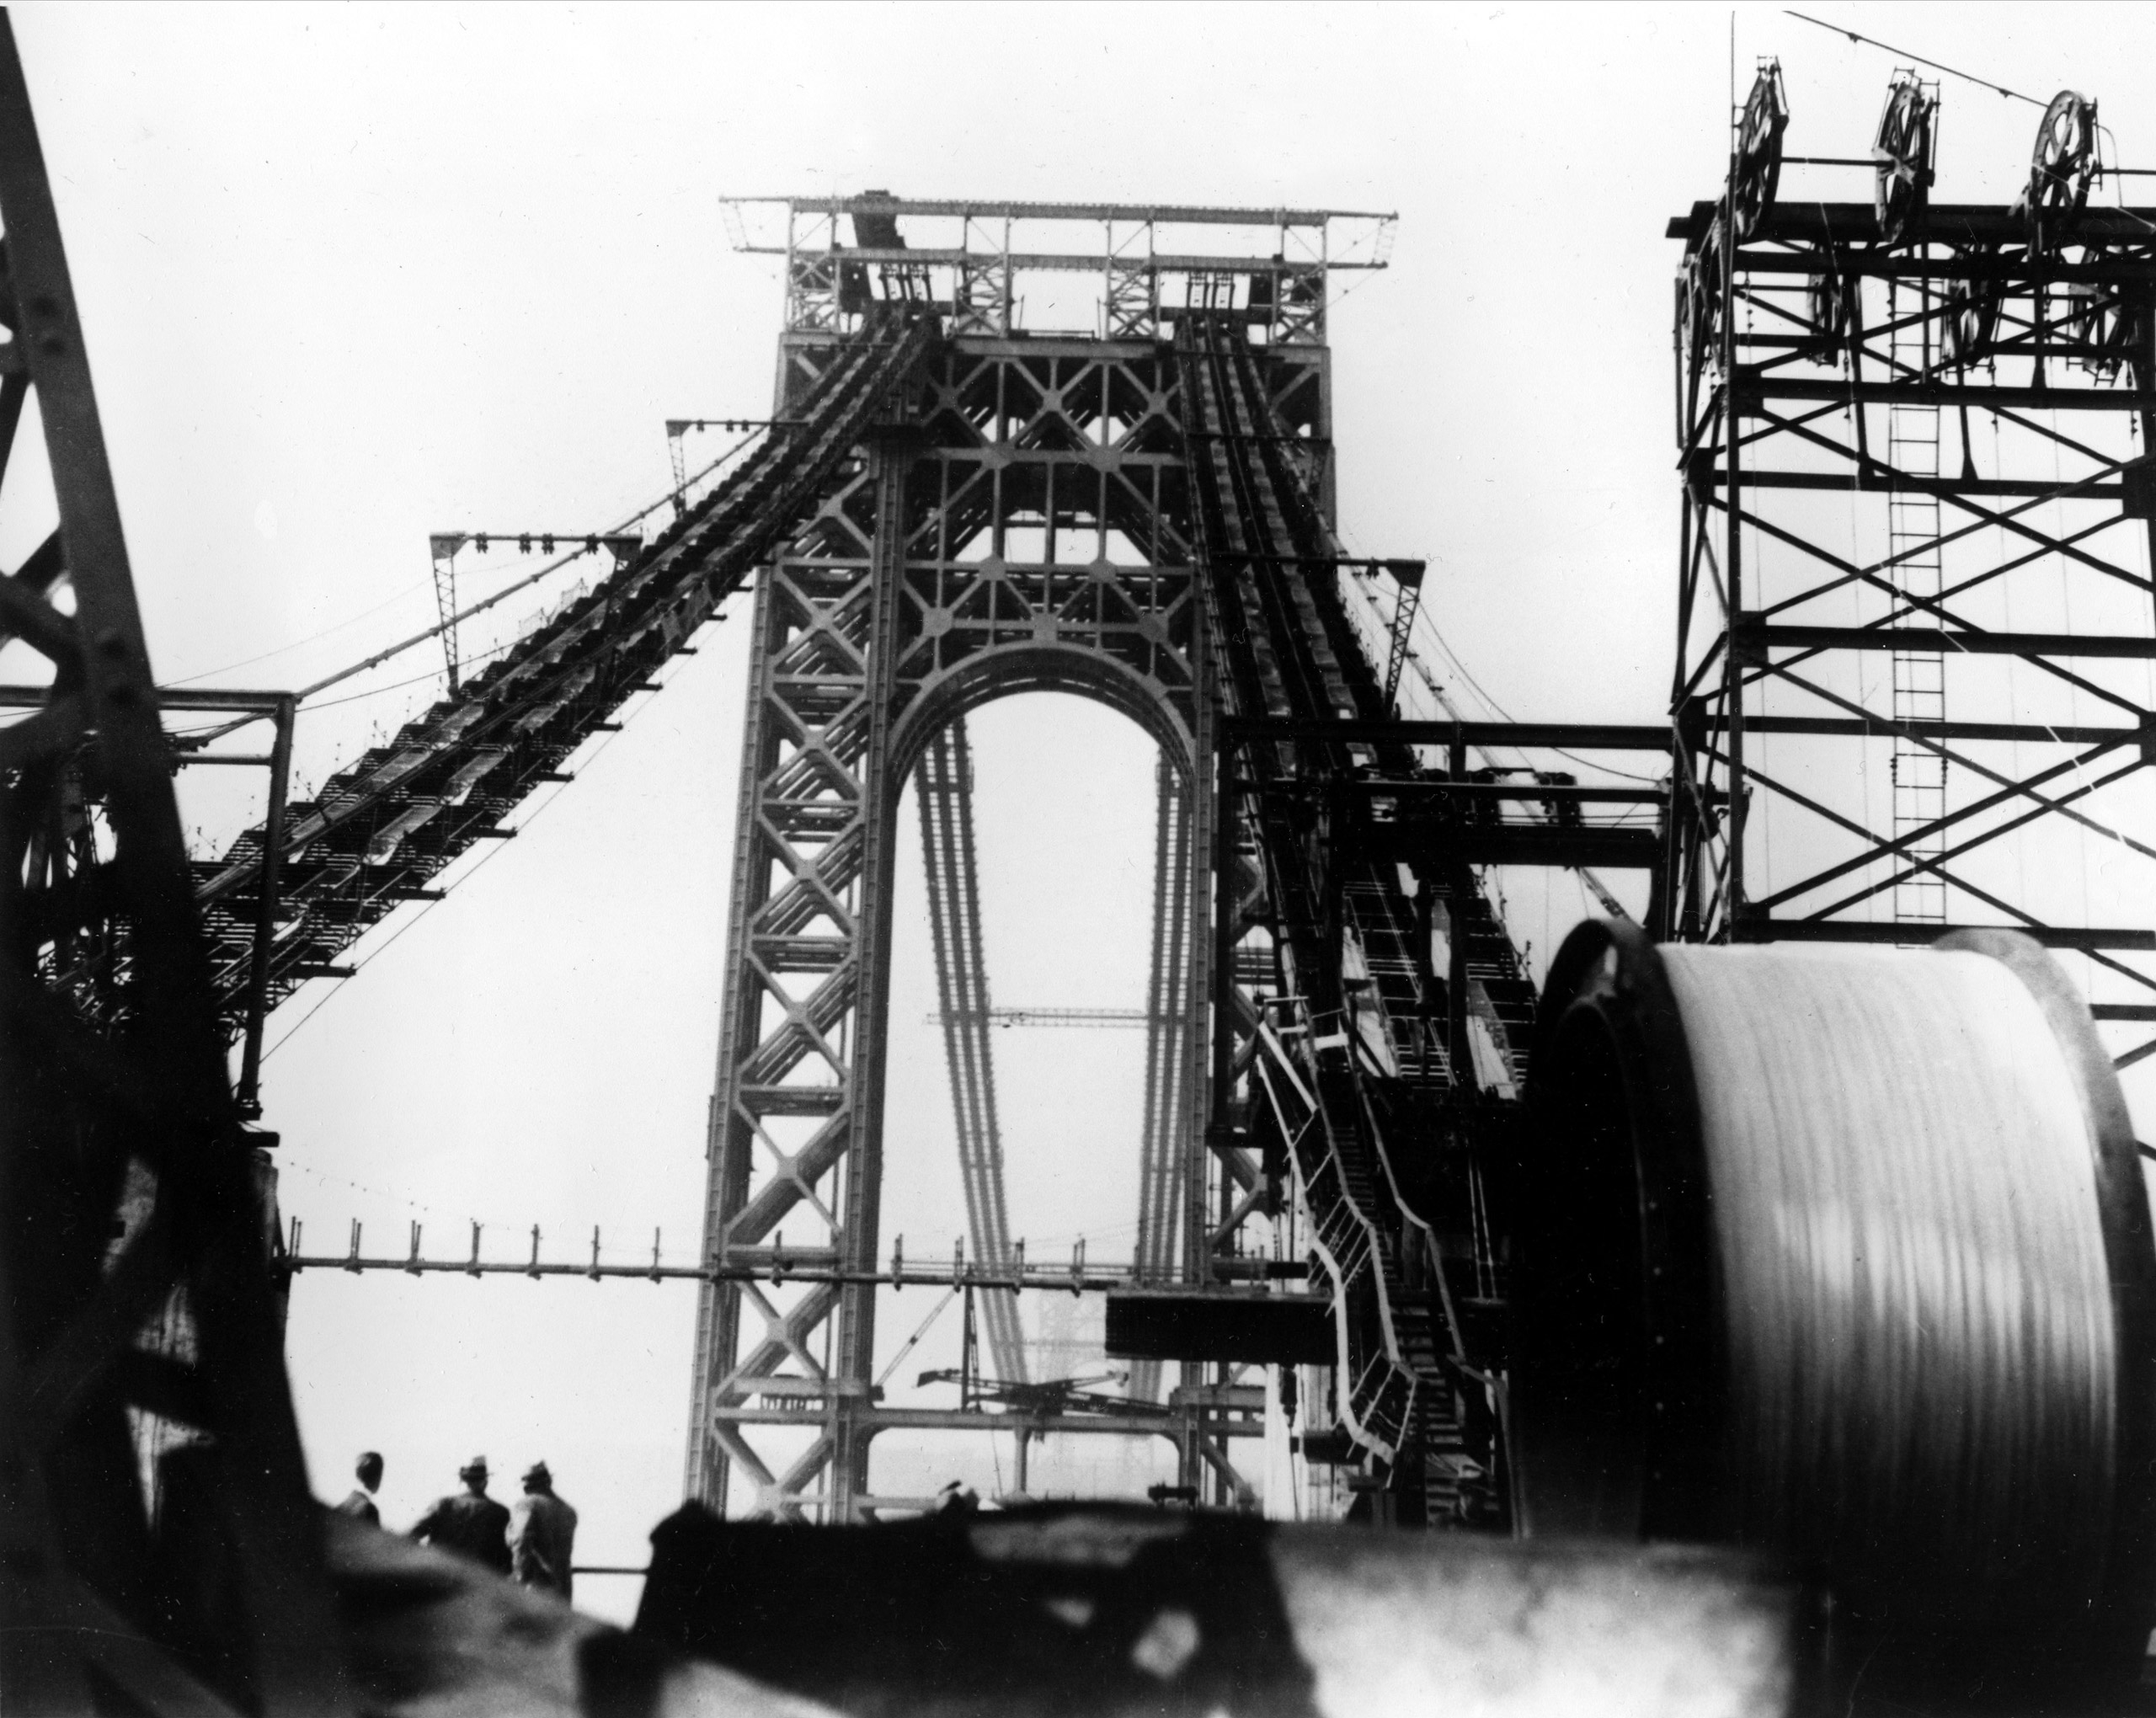 The main cable of the George Washington Bridge is being laid as construction of the suspension bridge connecting New York and New Jersey continues on Oct. 23, 1929.